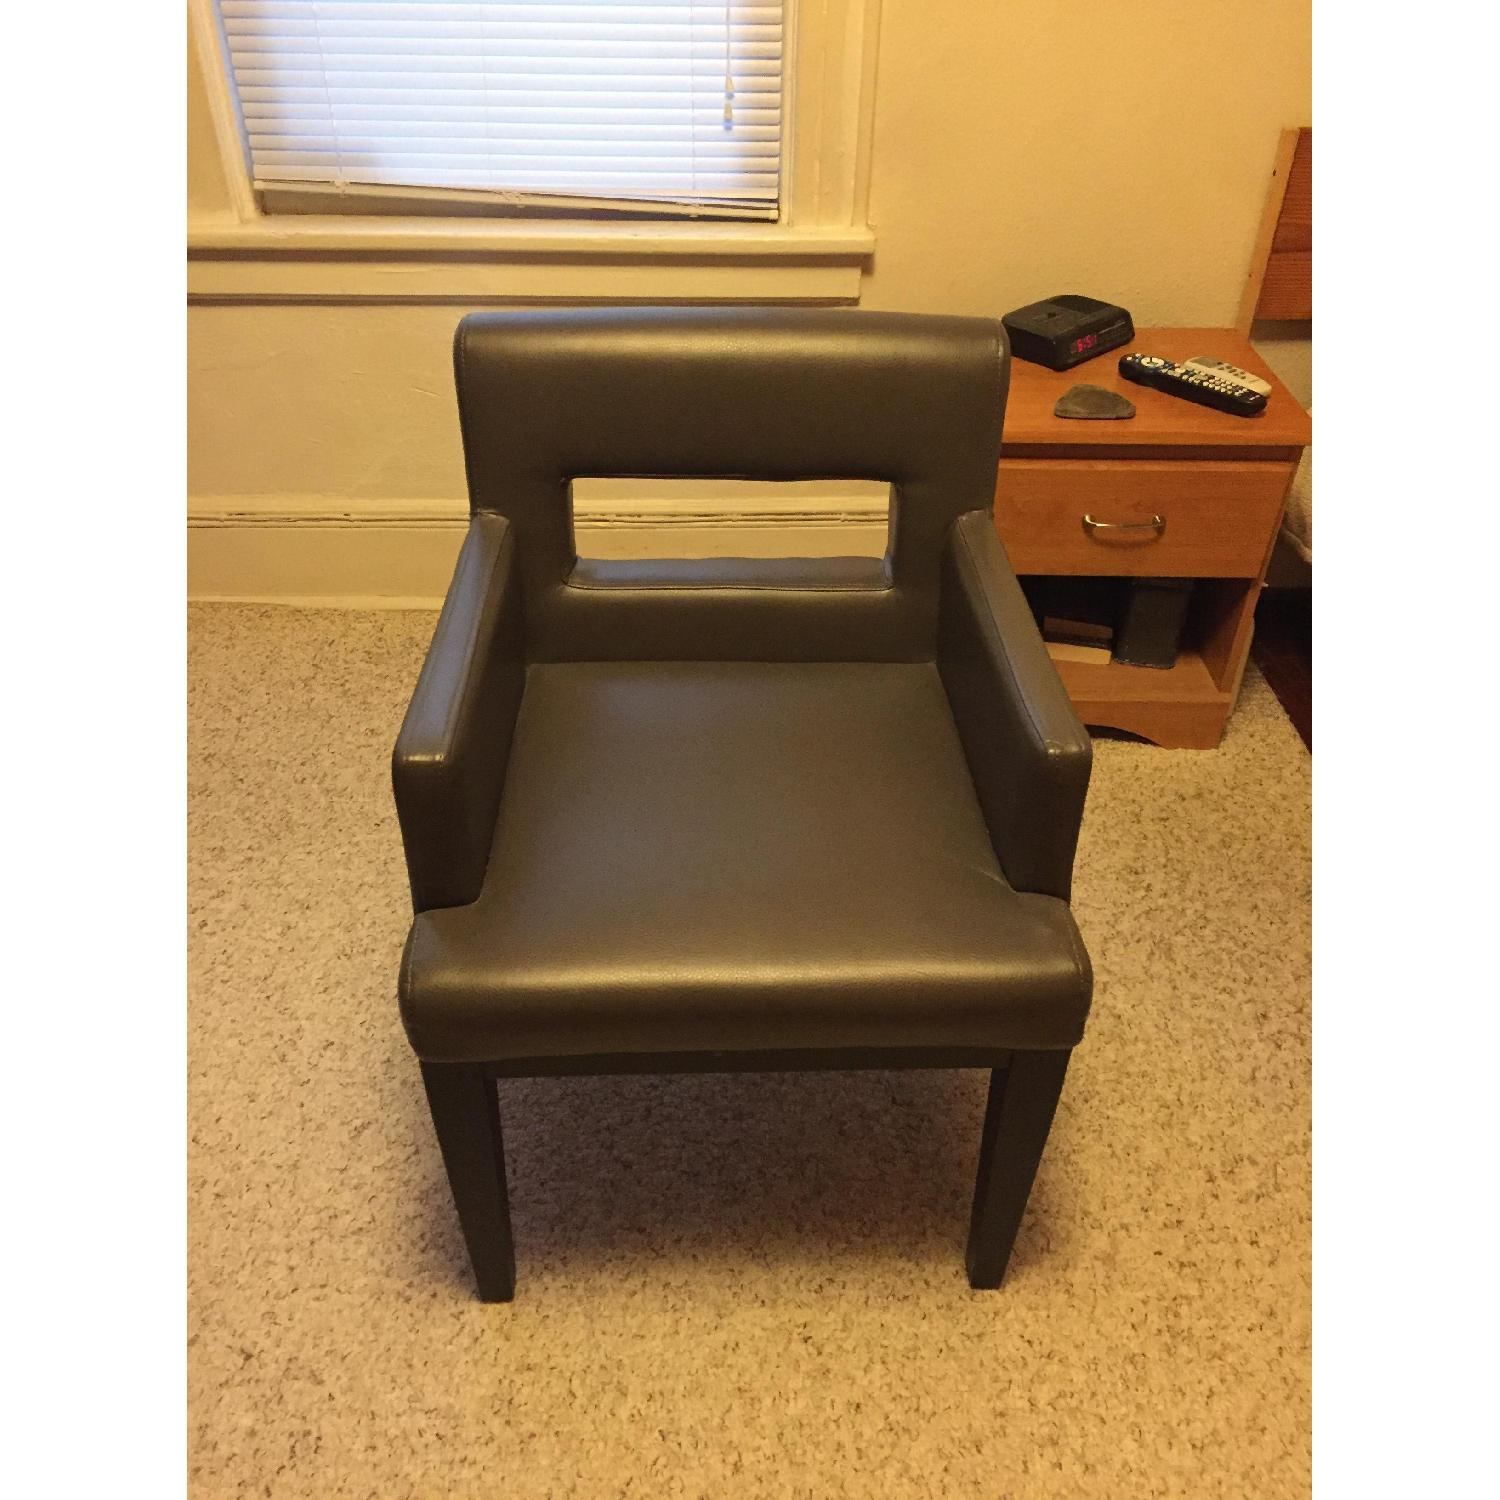 Home Goods Jason Furniture Upright Chair - image-1